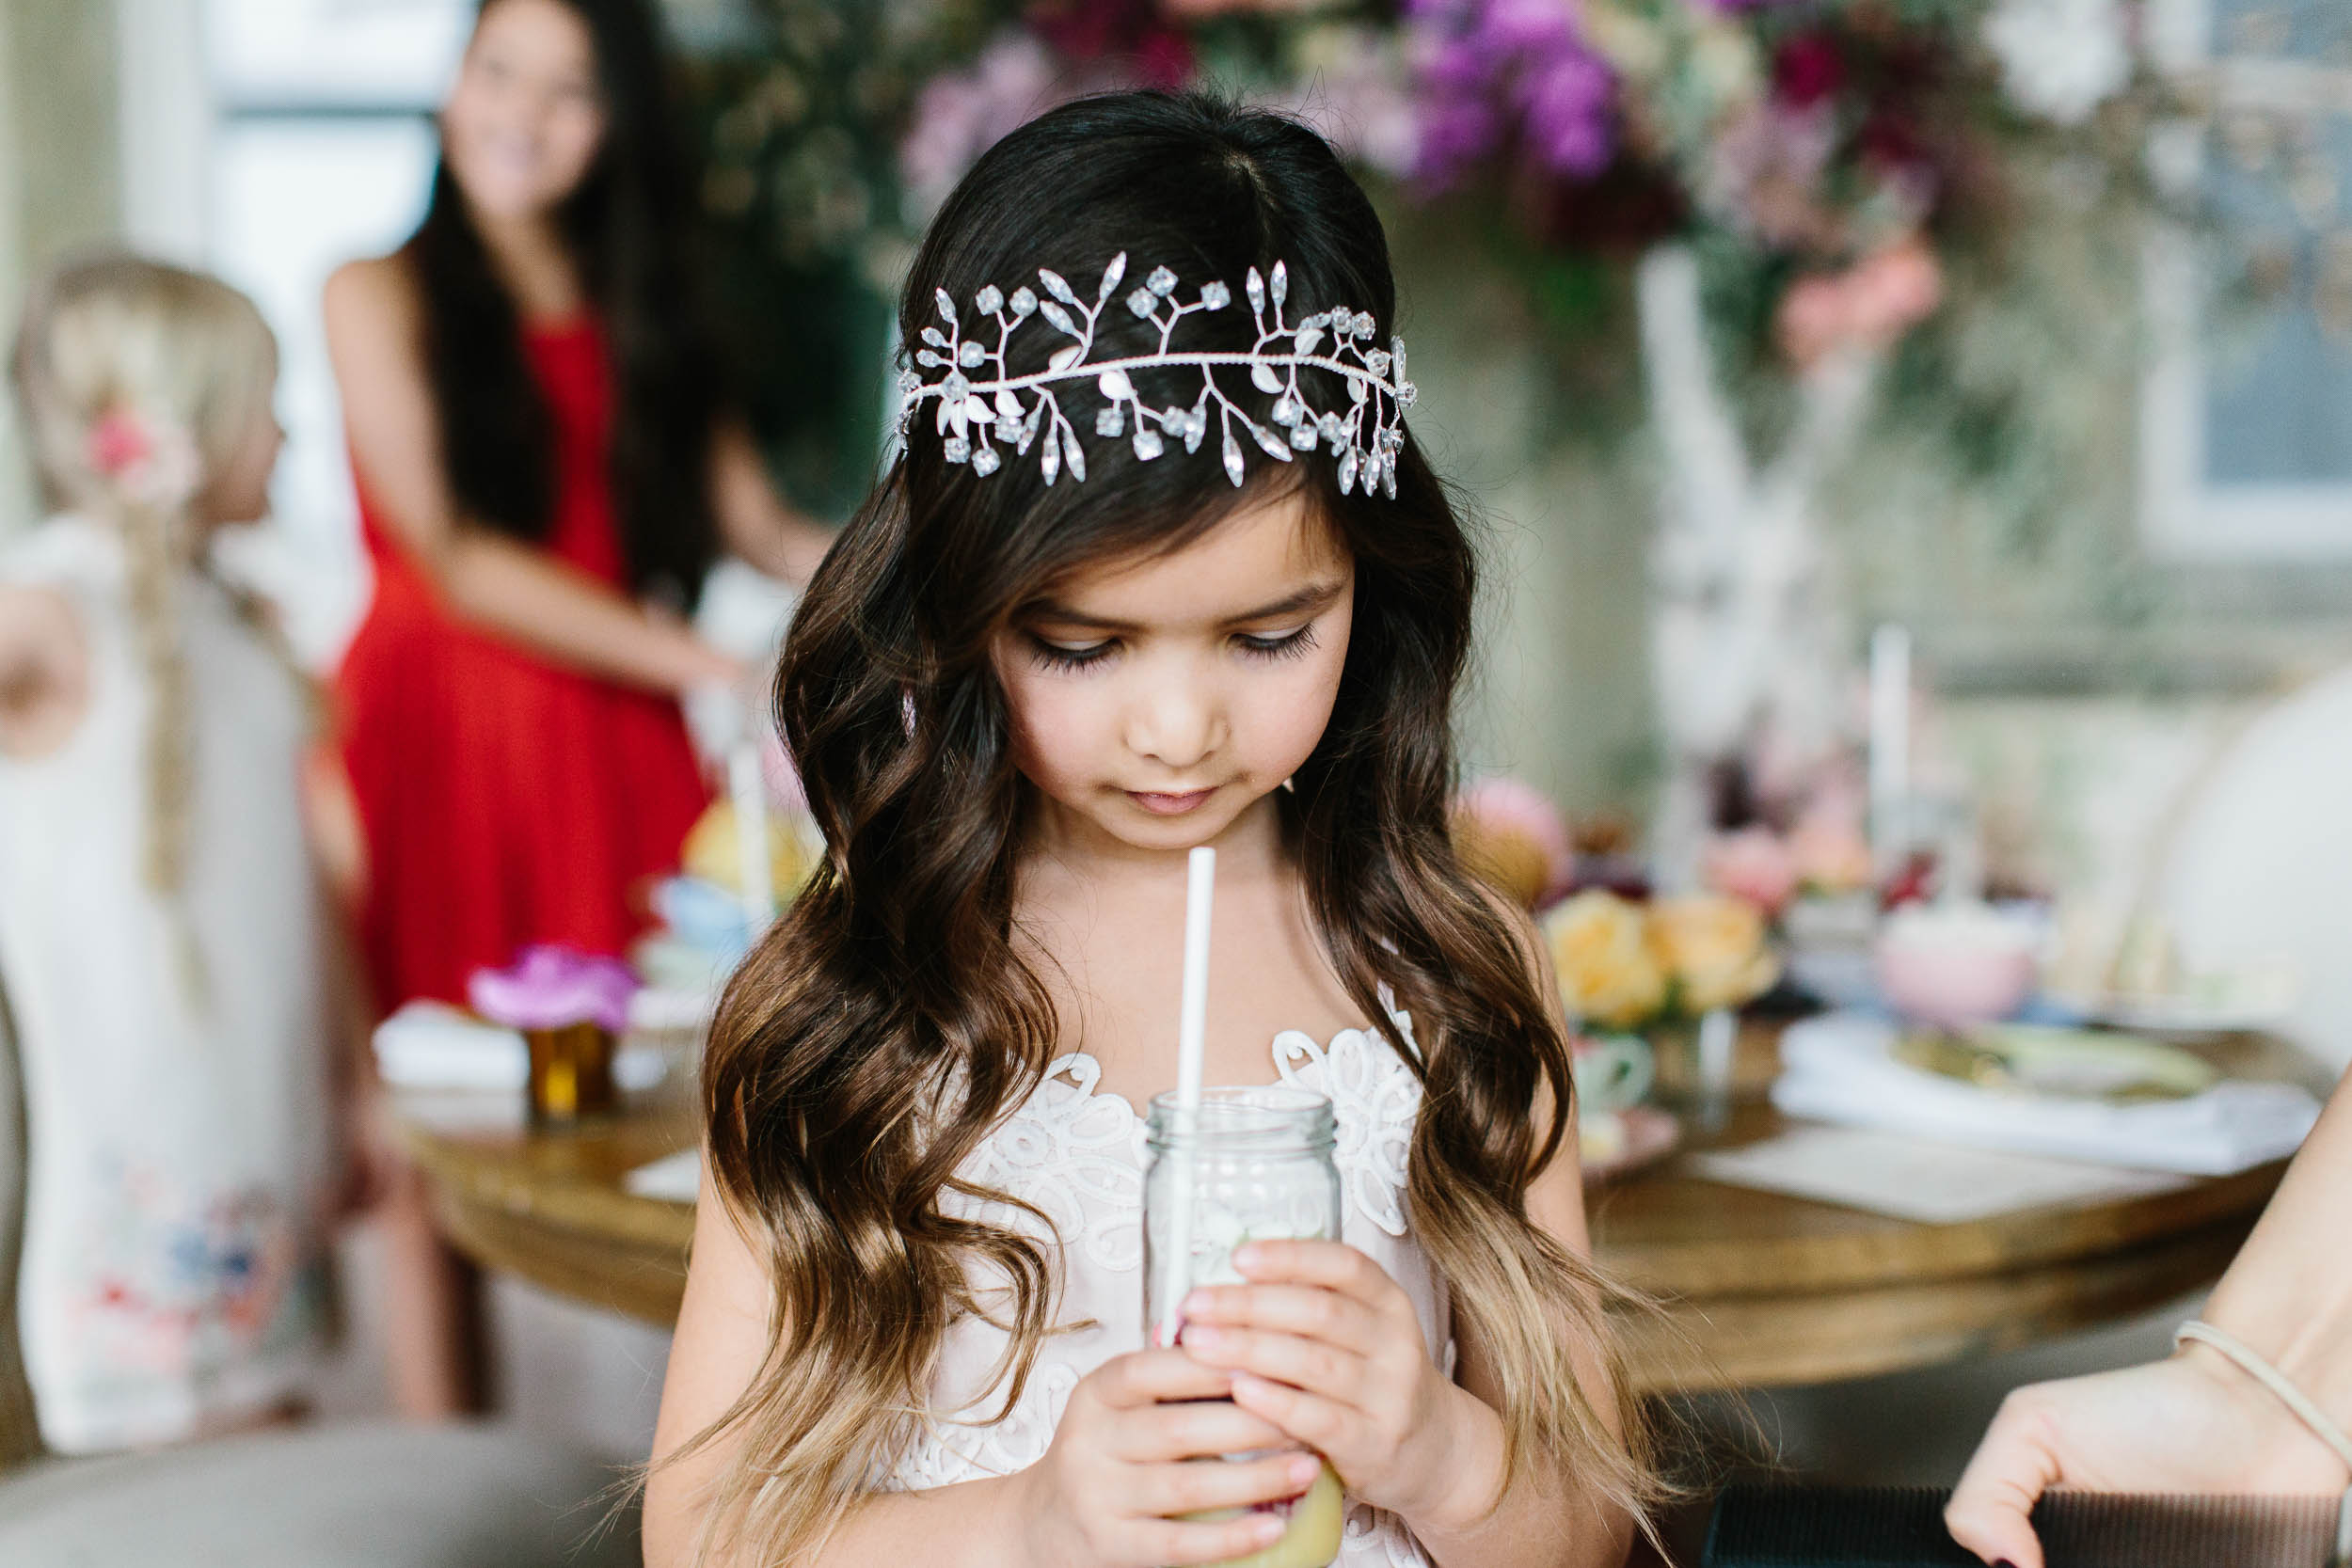 Kas-Richards-Party-with-Lenzo-Witchery-Kids-George-Ballroom-Event-81.jpg